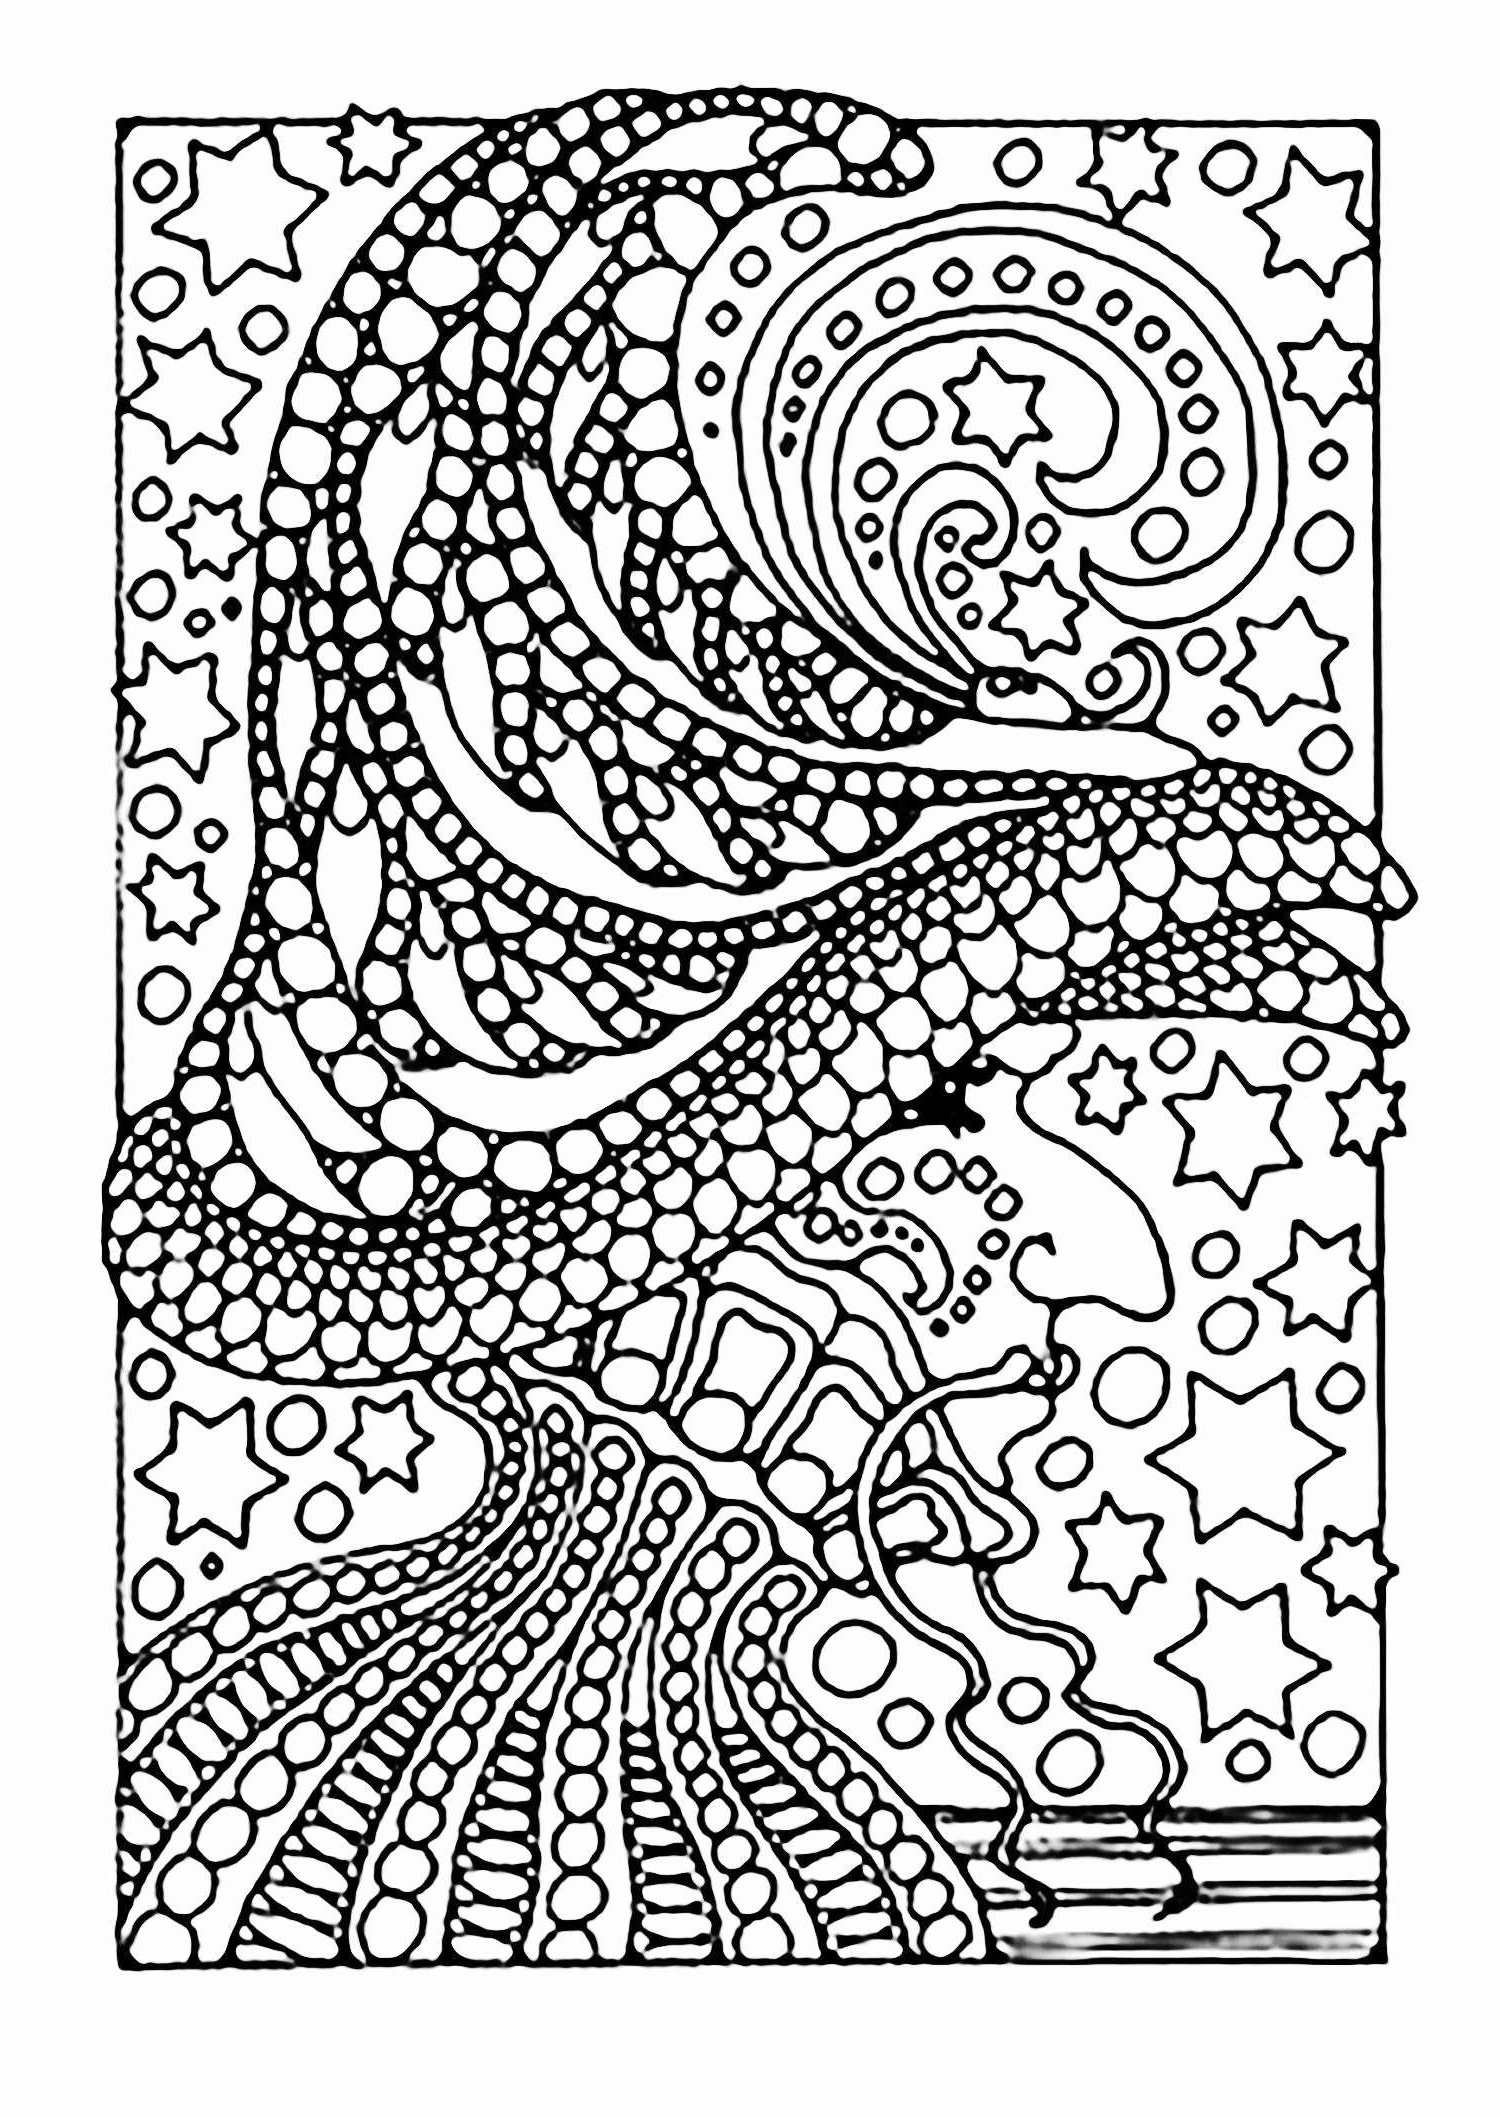 chinchilla coloring page best of gallery 31 luxus kinder garten of chinchilla coloring page